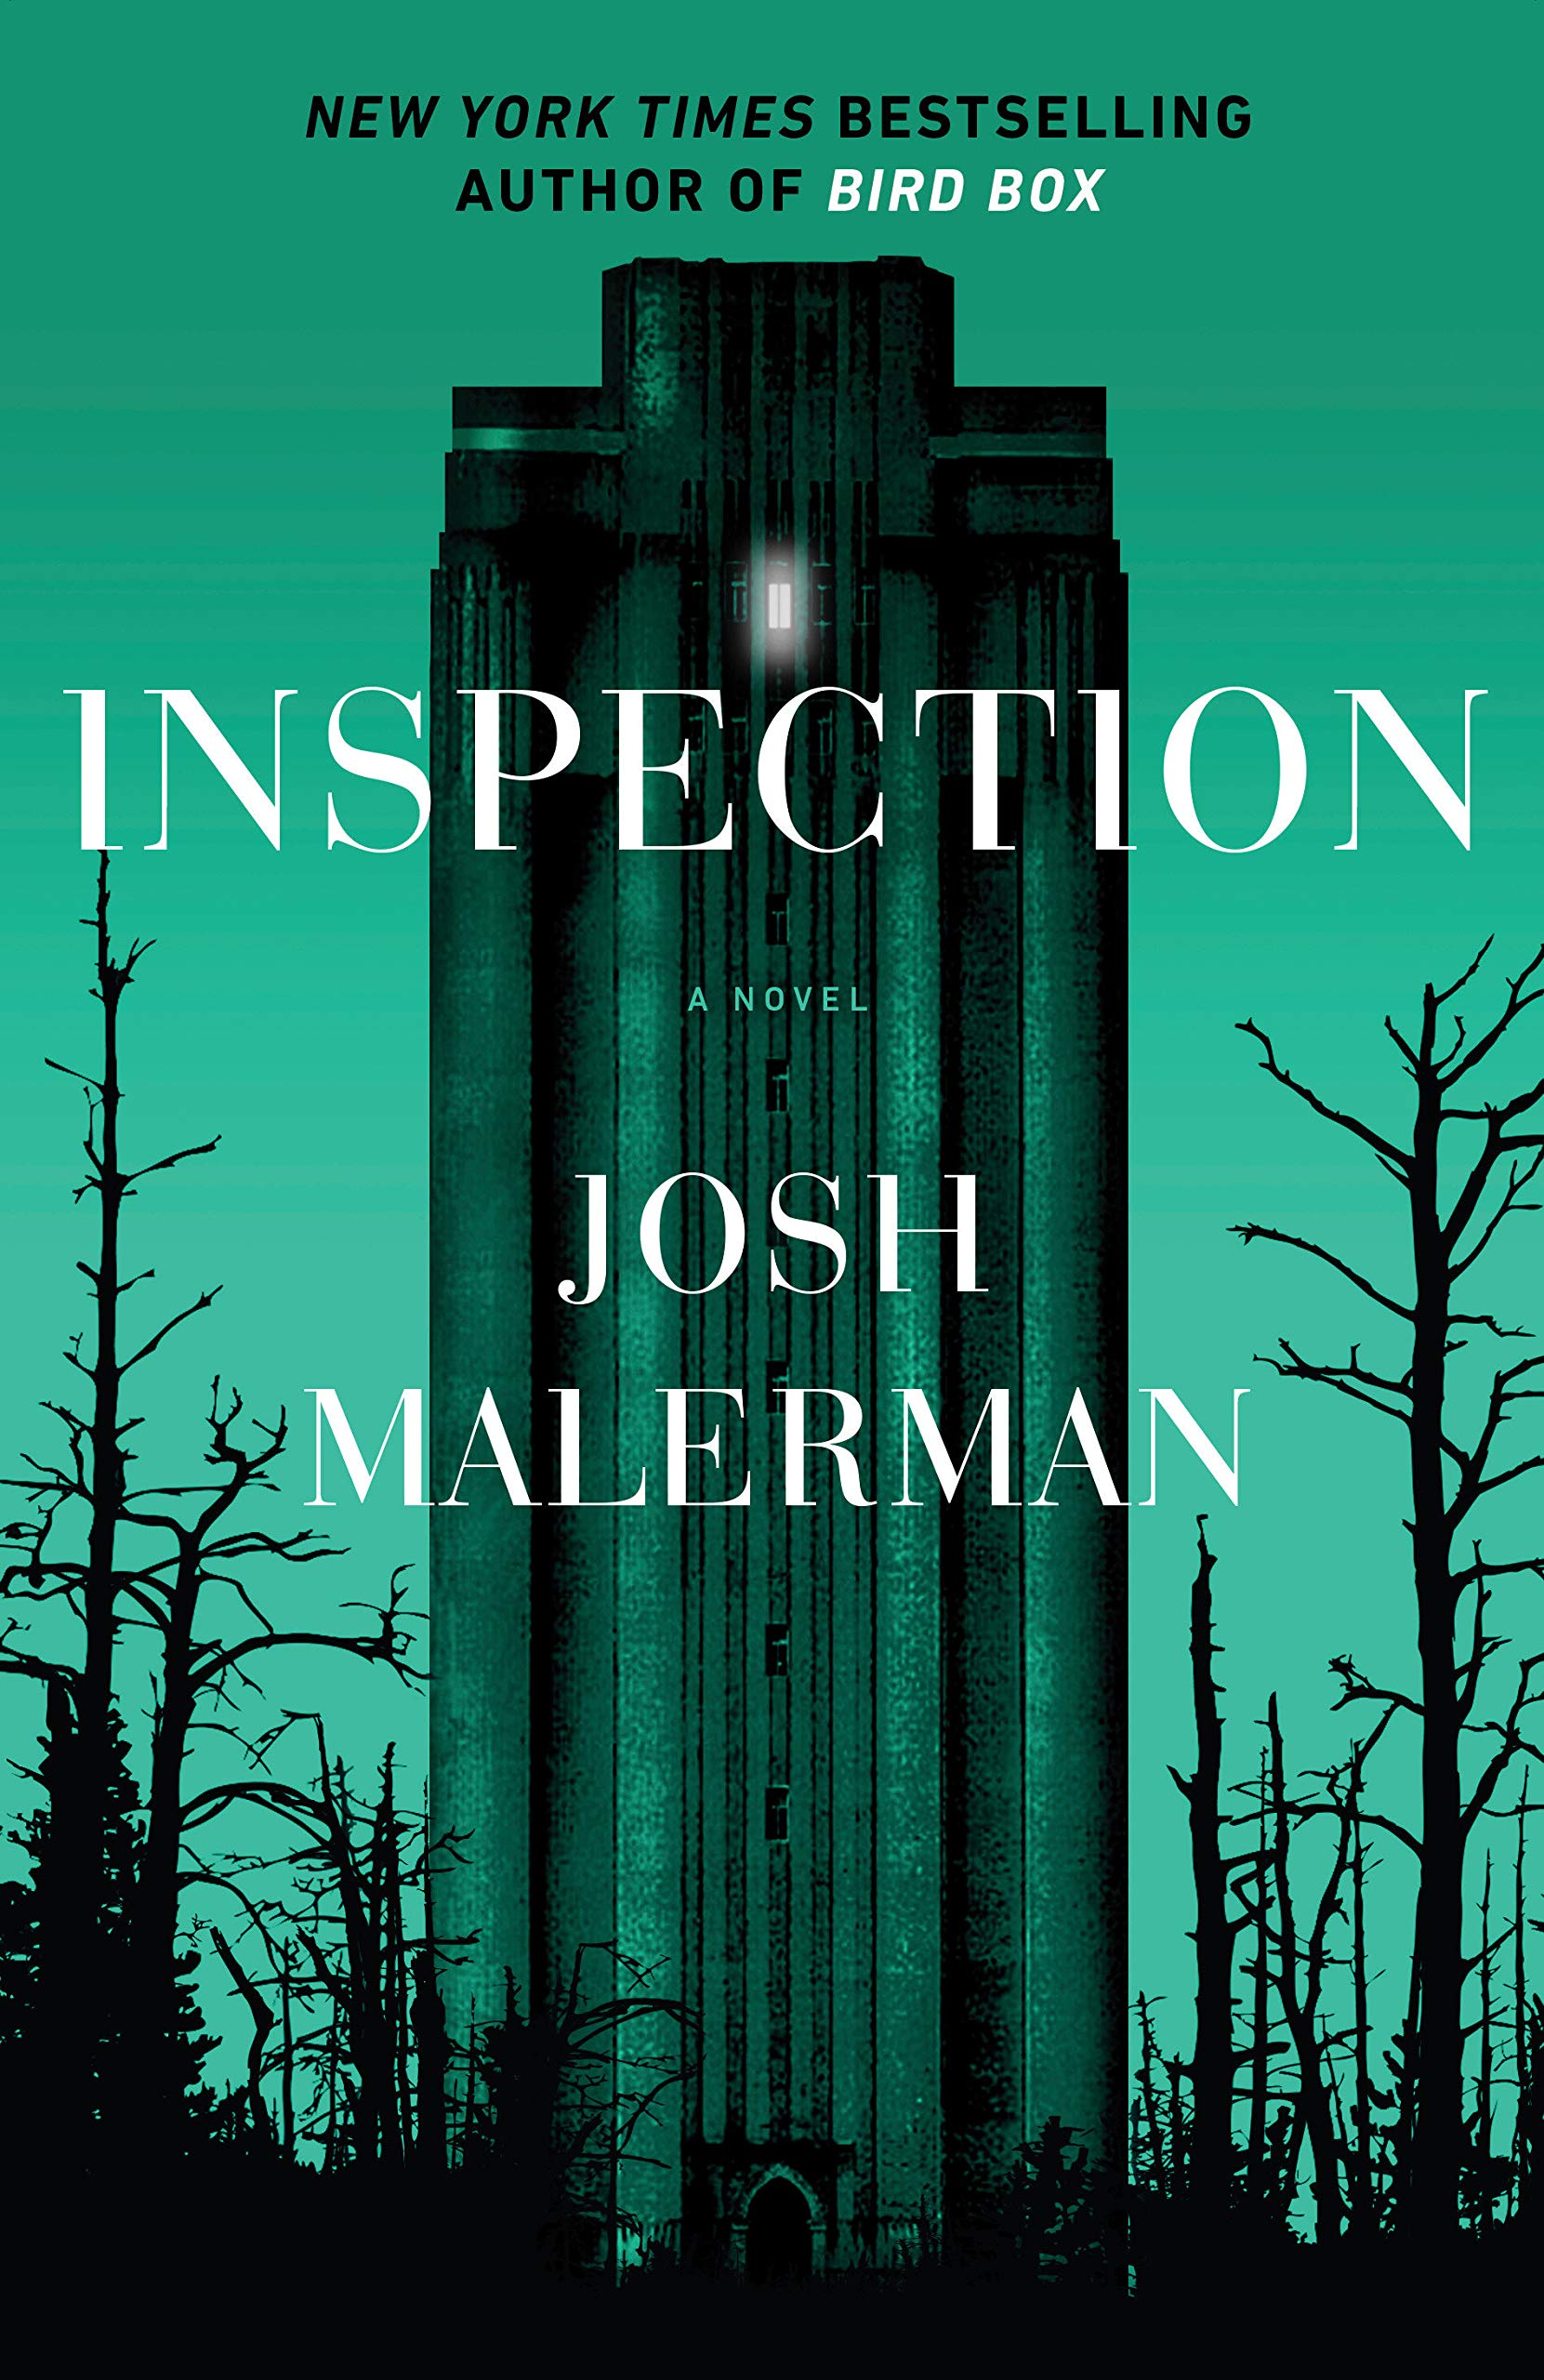 cover of Inspection, featuring a tall, creepy modern tower in a forest, bathed in eerie green light